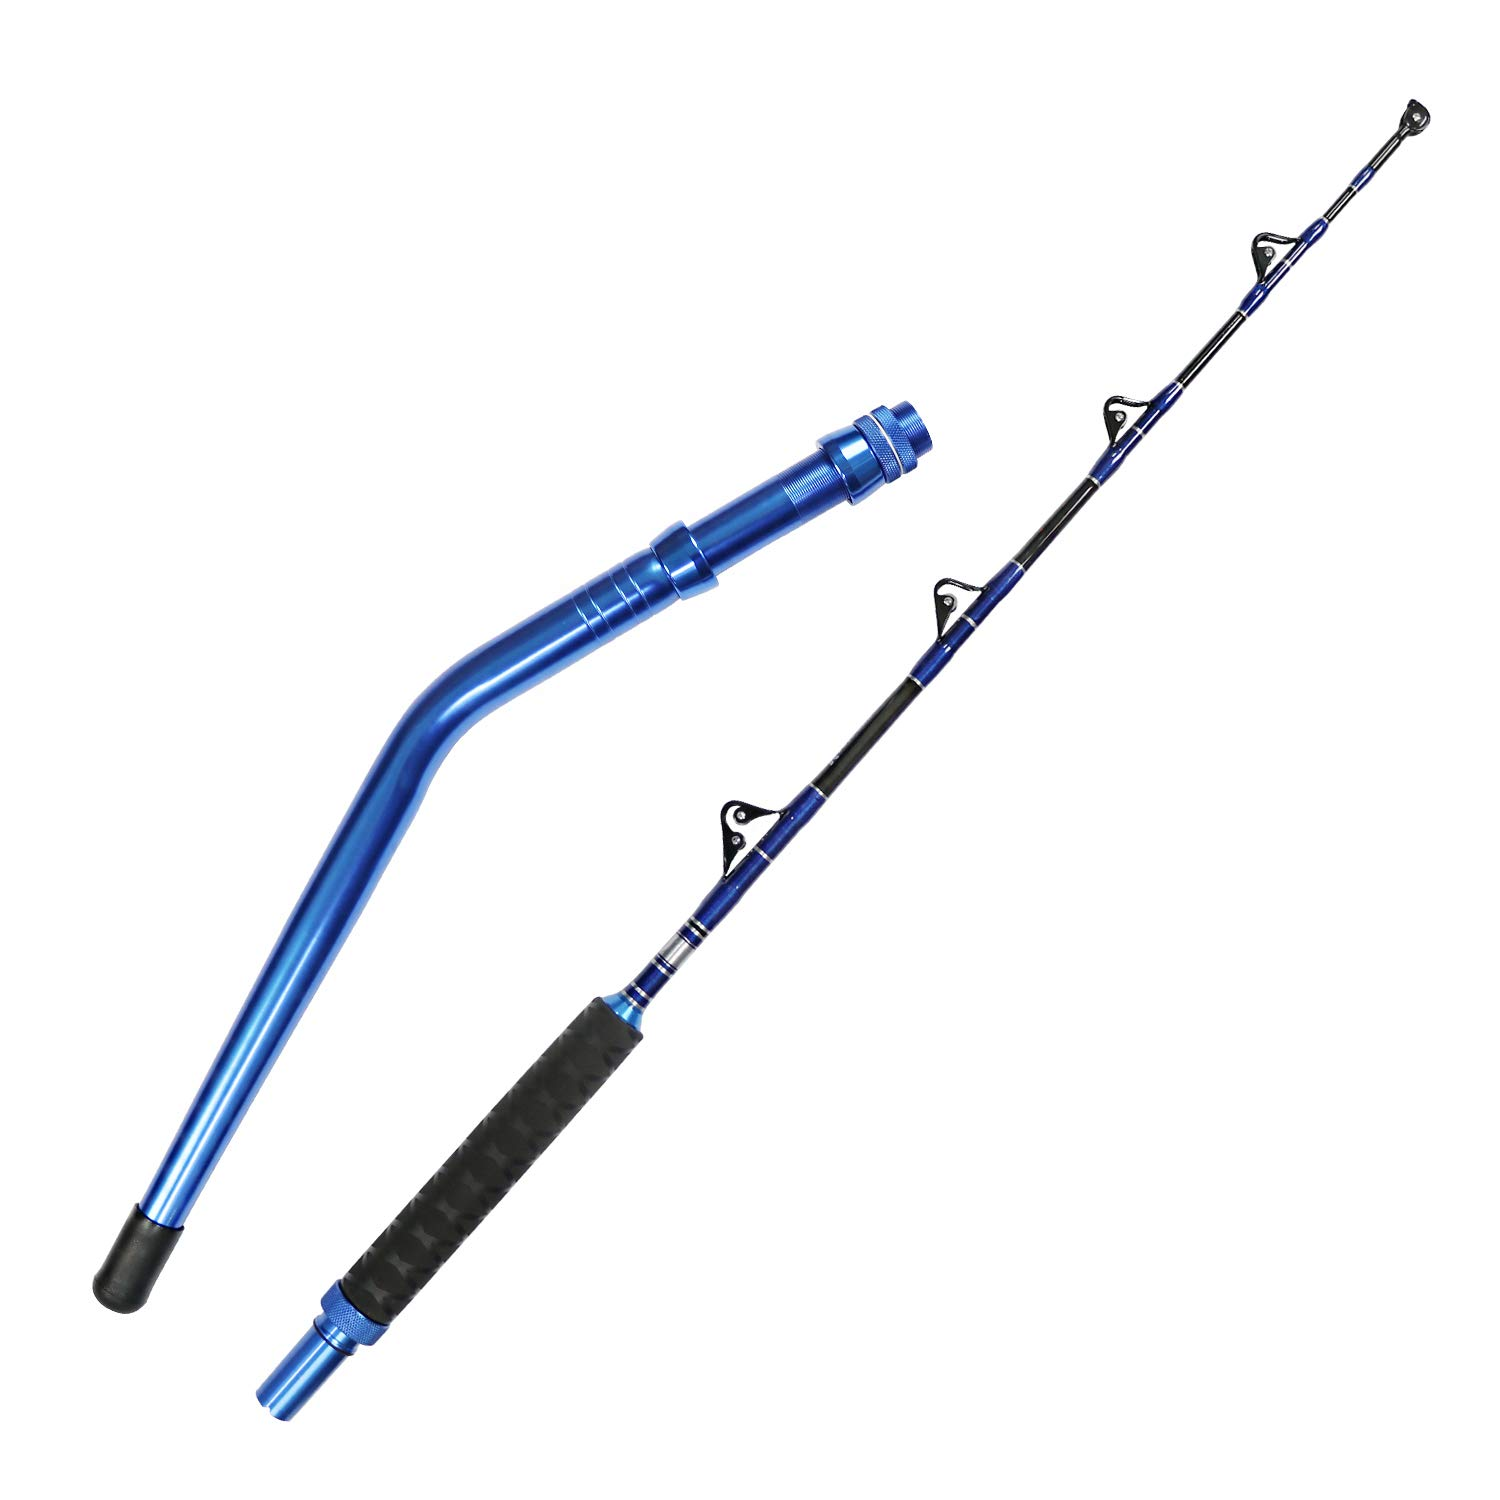 Bent Butt Fishing Rod 80-120lb 2-Piece Trolling Rod Saltwater Offshore Rod Conventional Boat Fishing Pole (5'6'')